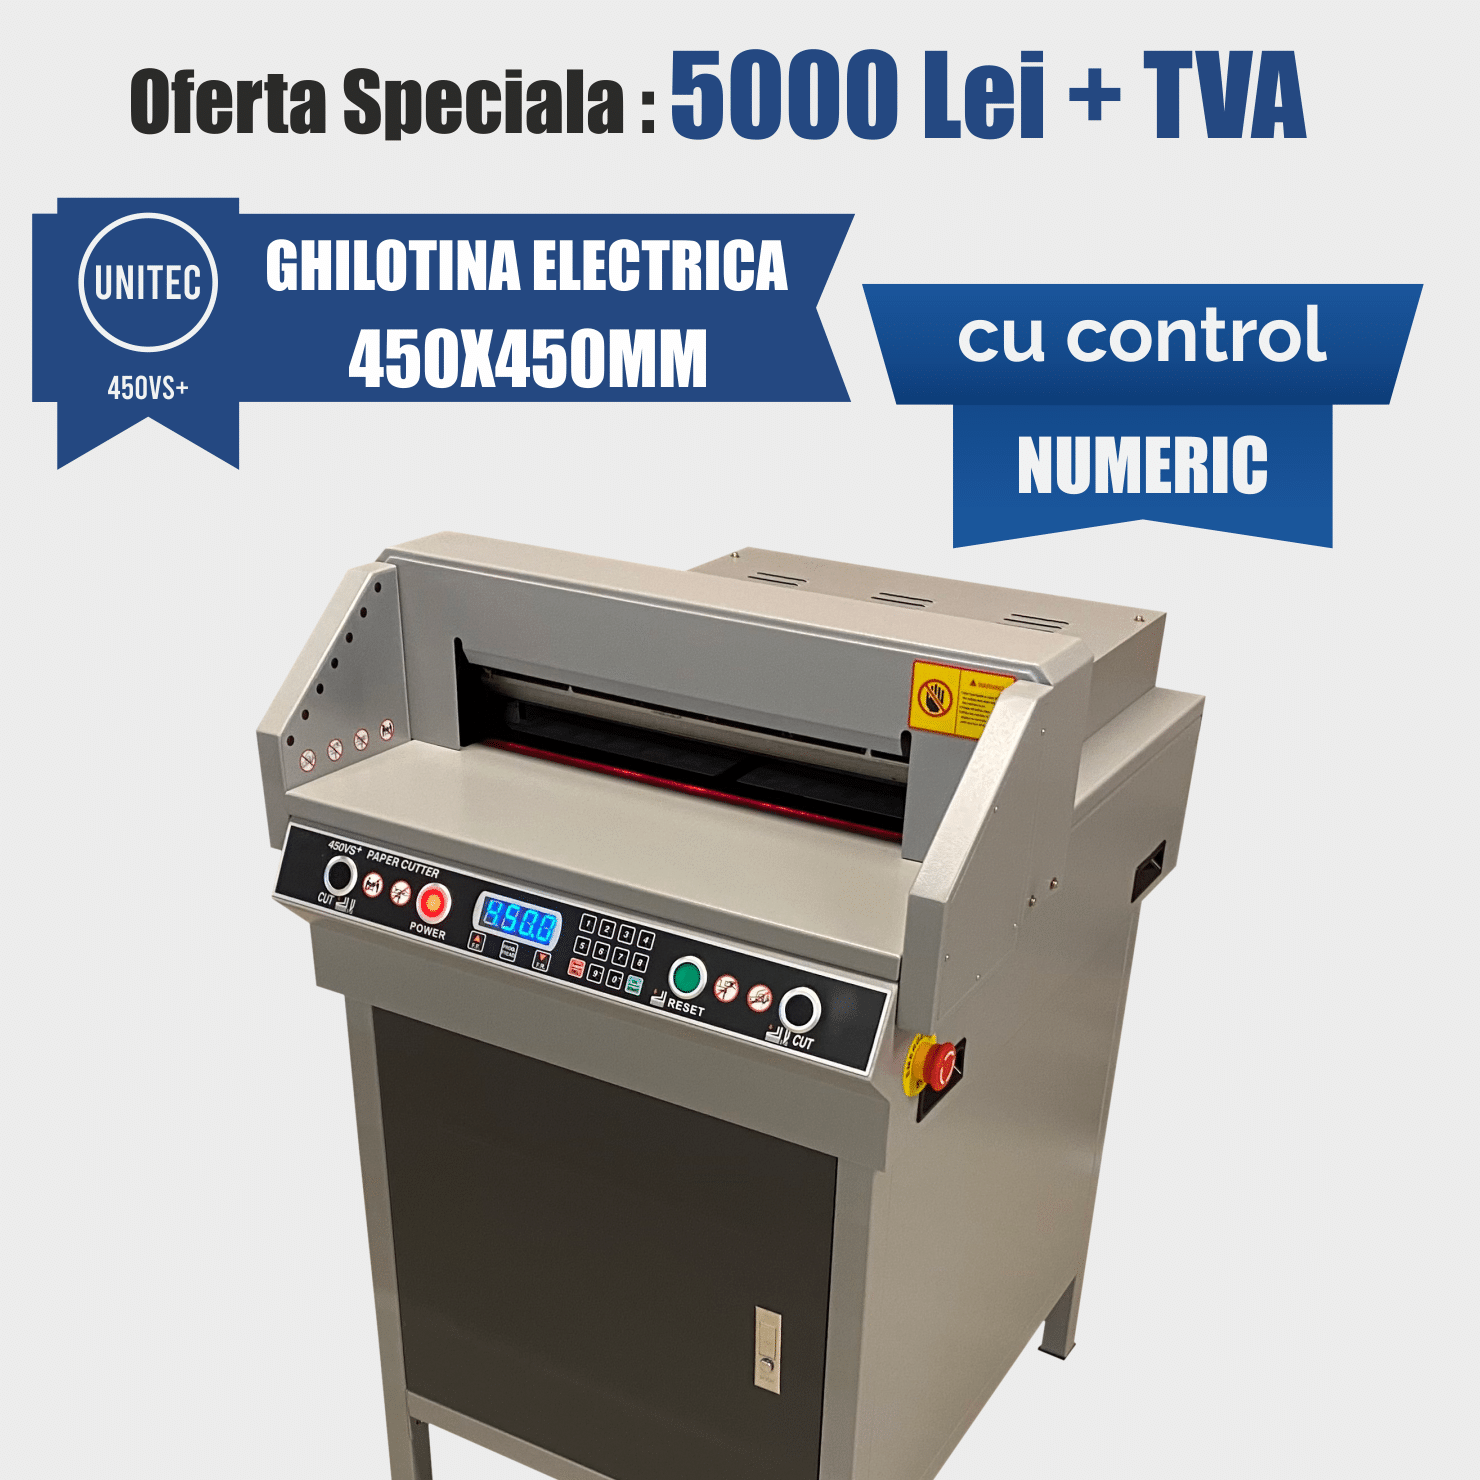 ghilotina electrica 450vs